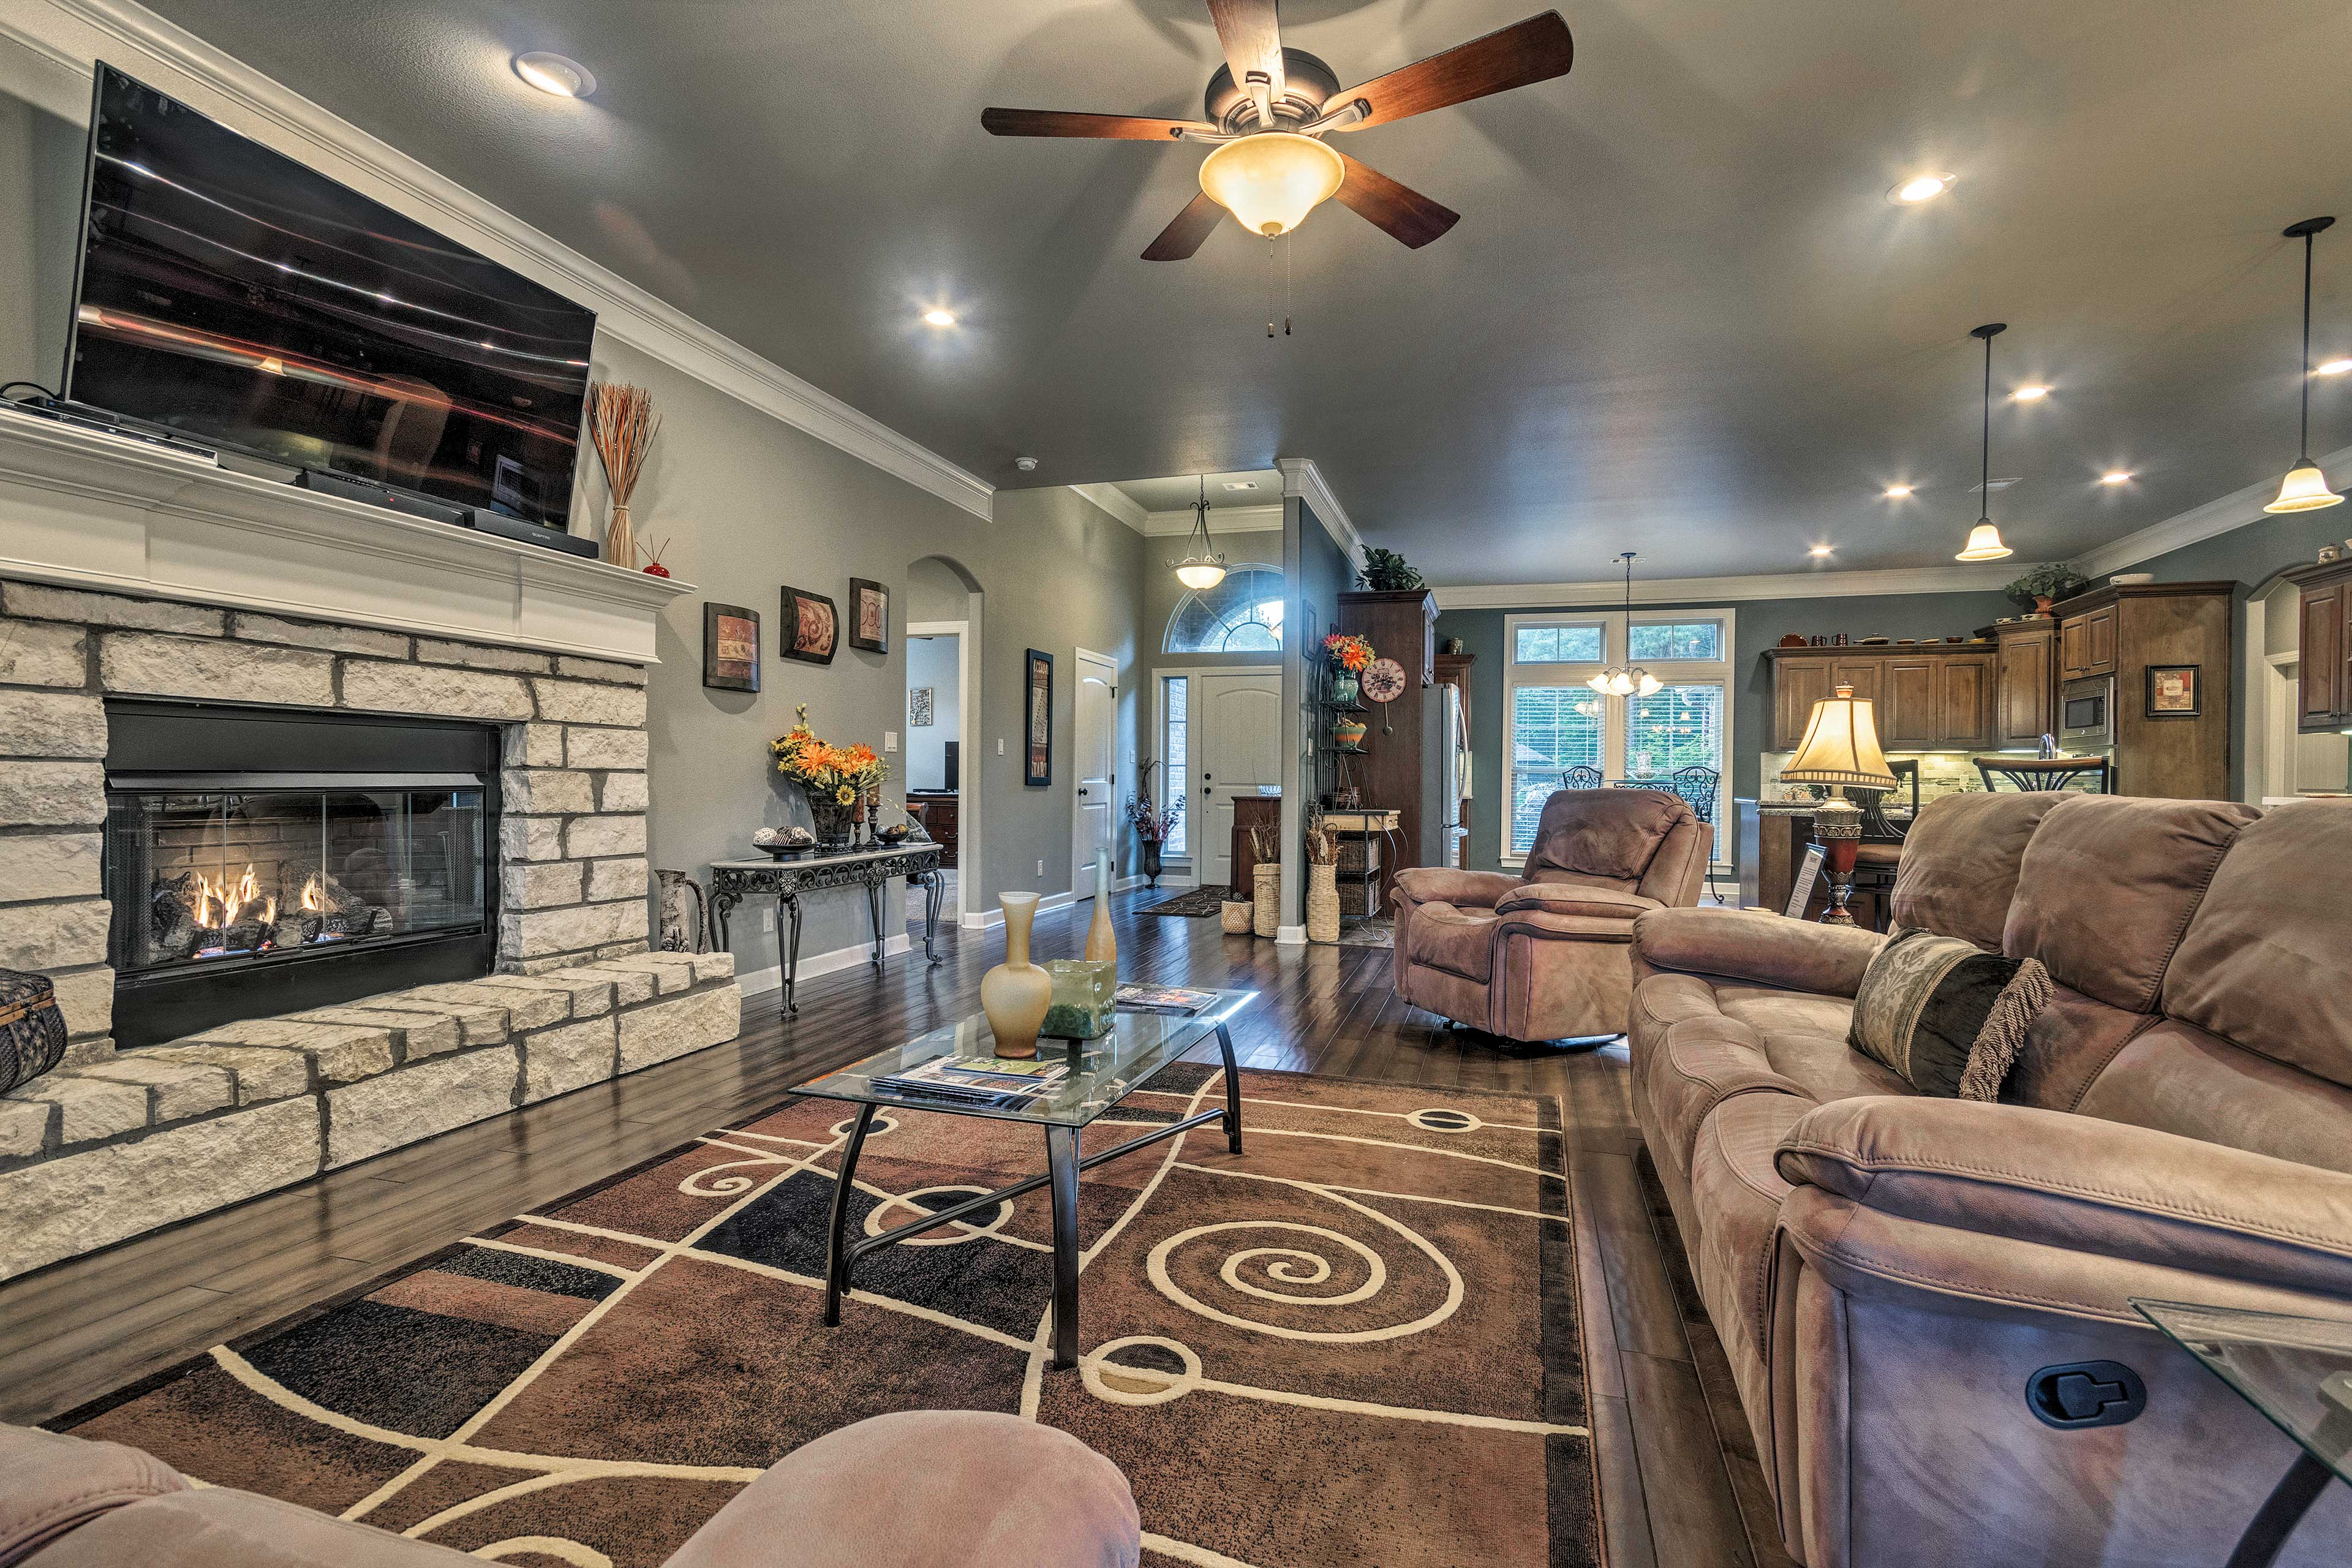 You'll love the warmth of the gas fireplace.